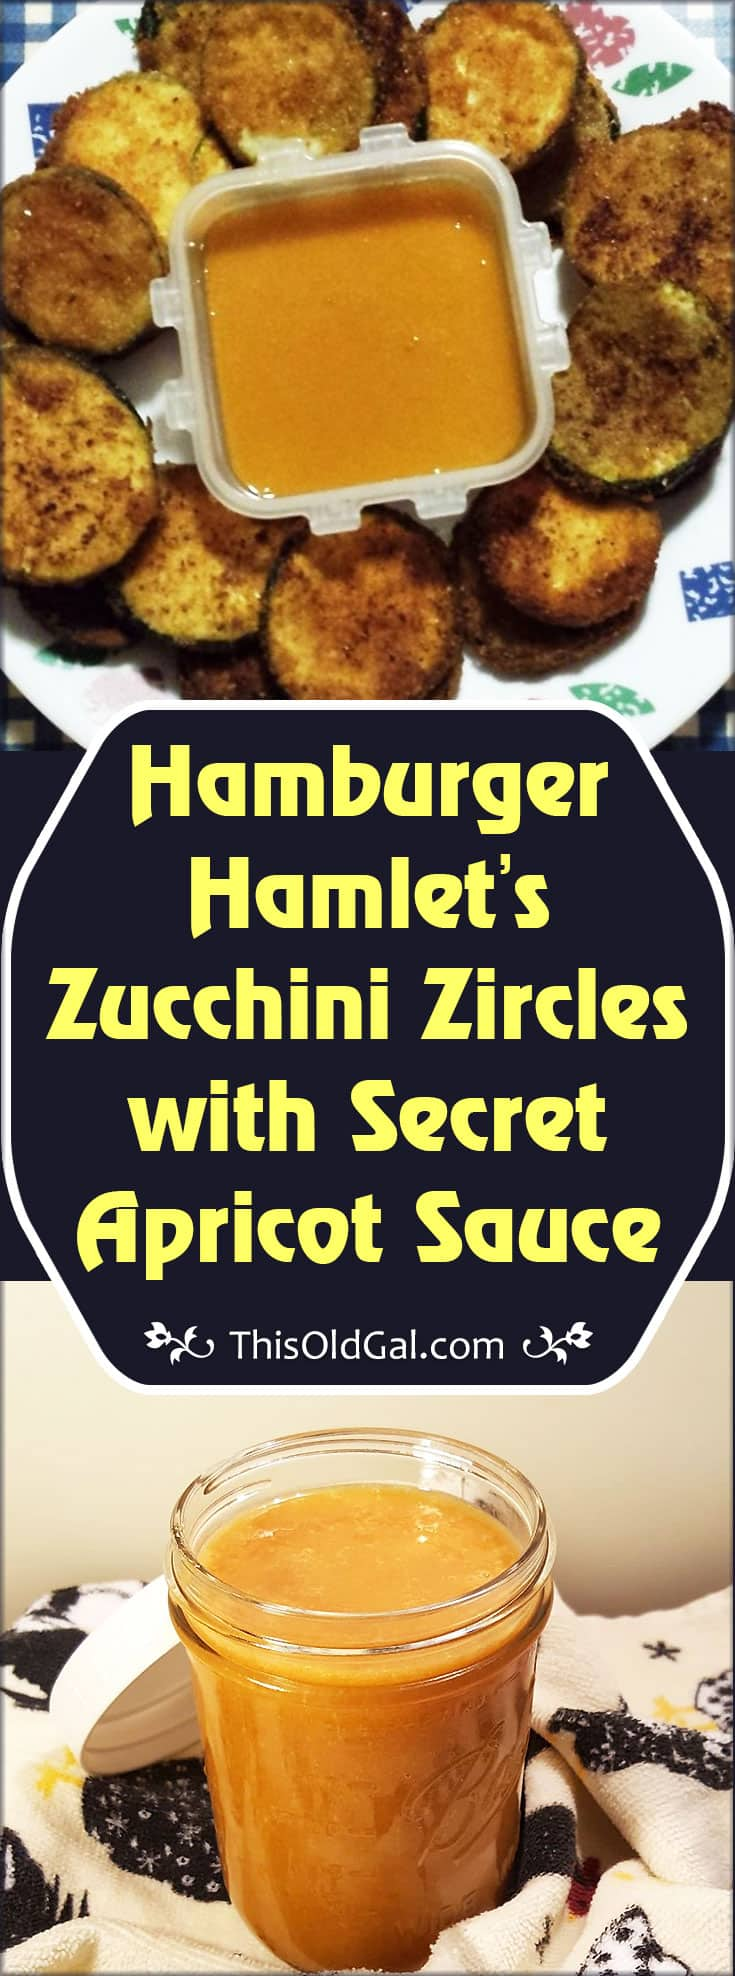 Hamburger Hamlet's Zucchini Zircles with Secret Apricot Sauce